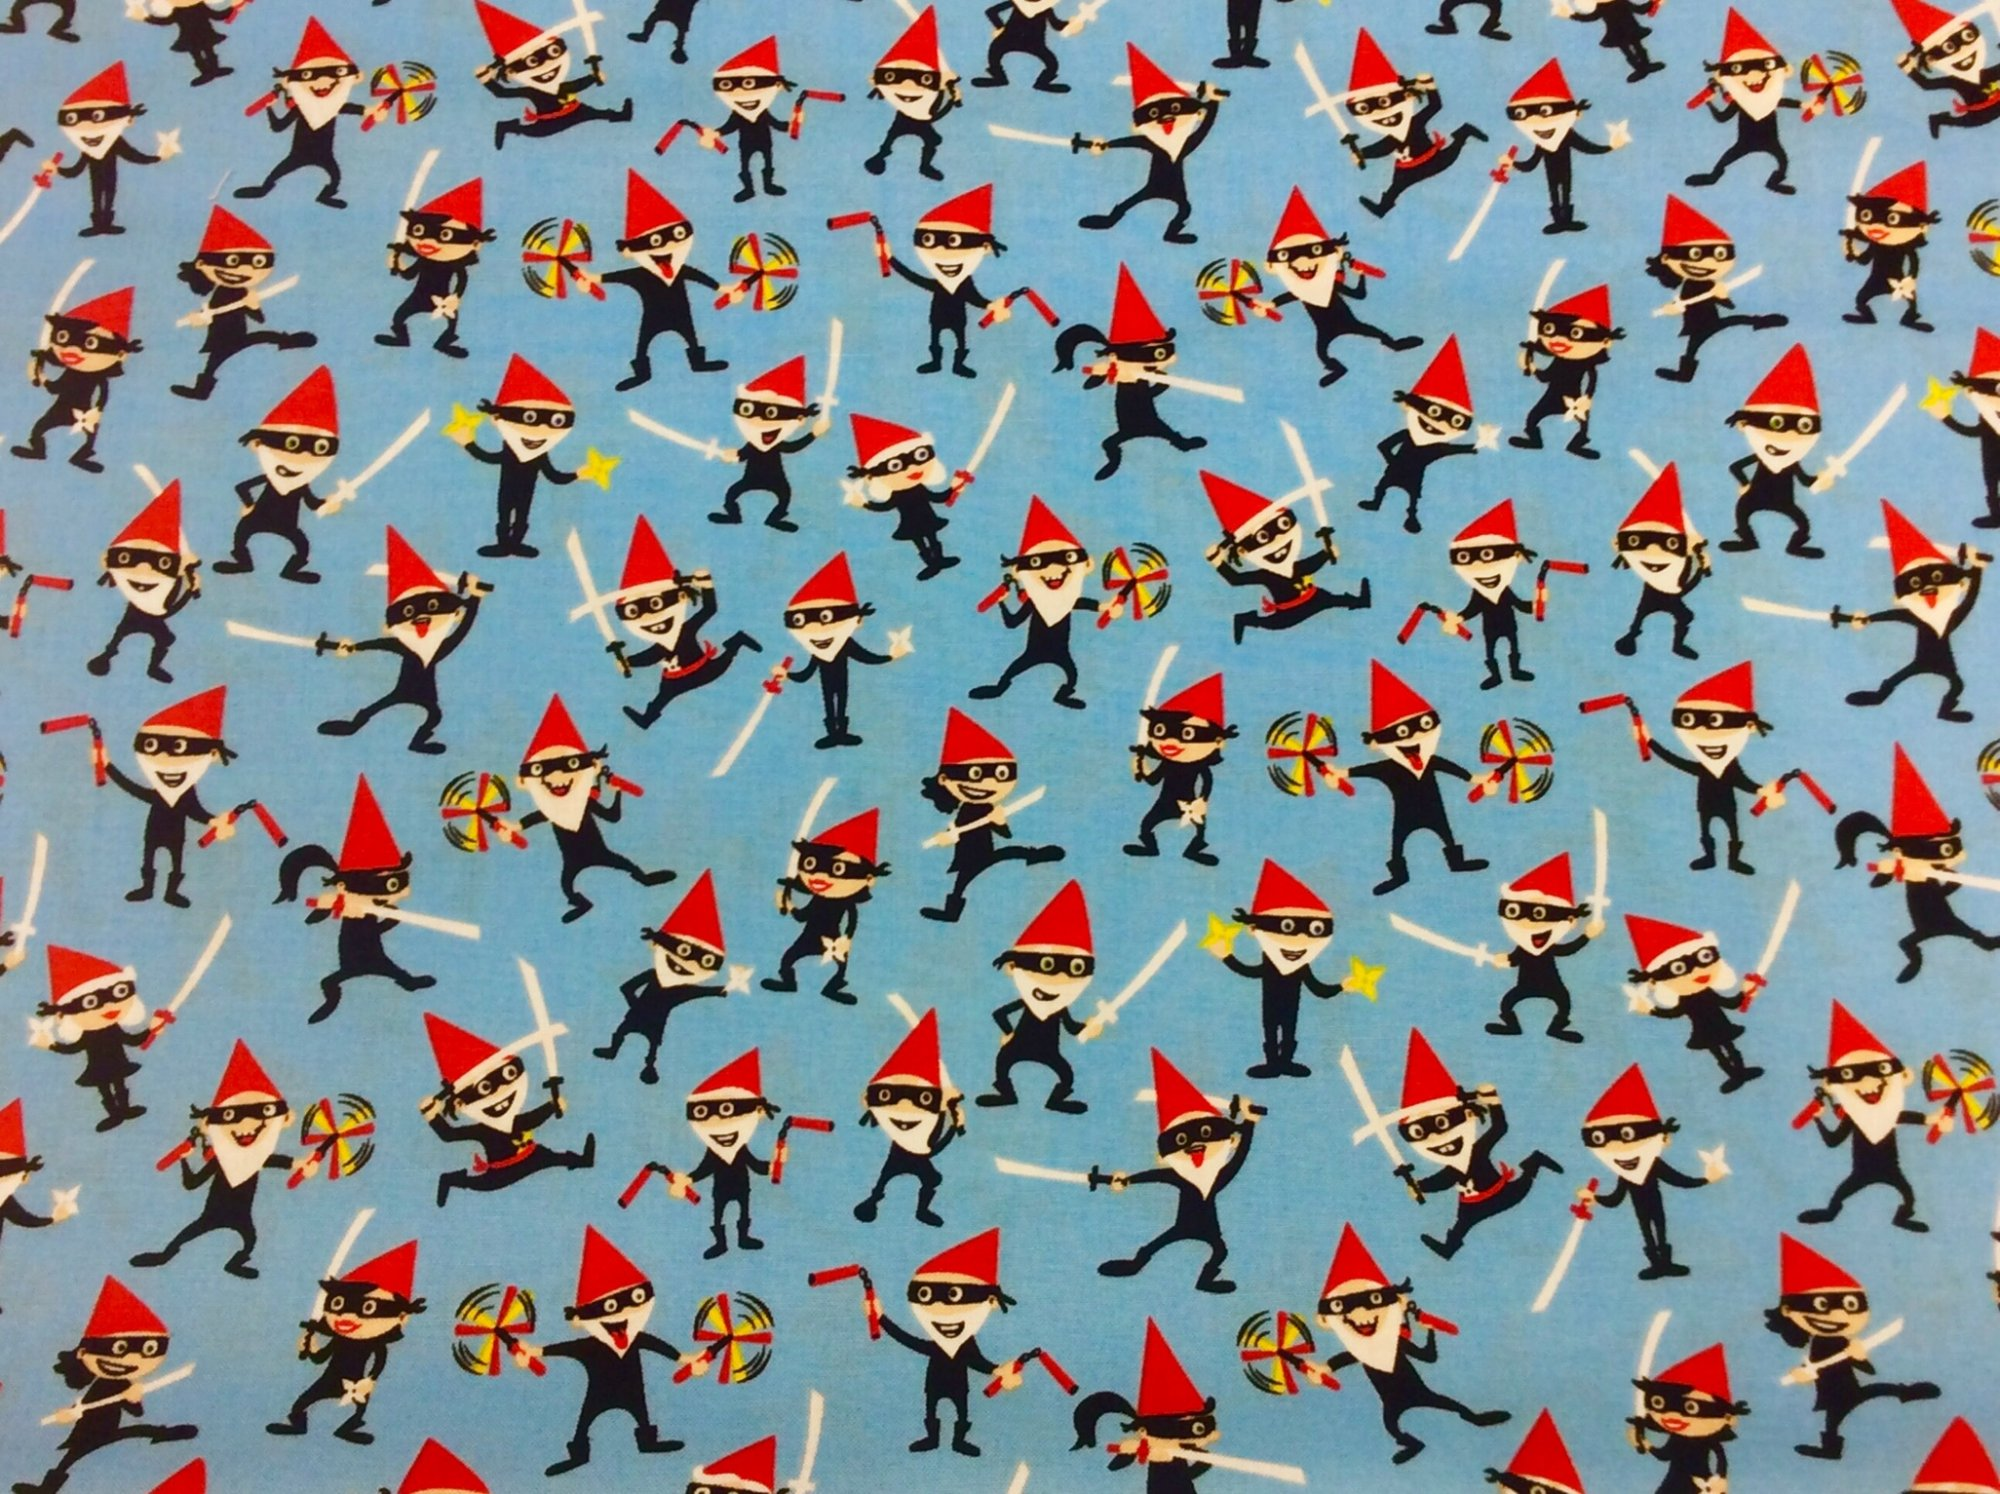 MM111 Gnome Gninjas Ninja Gnomes Retro Scandinavian Cotton Quilt Fabric